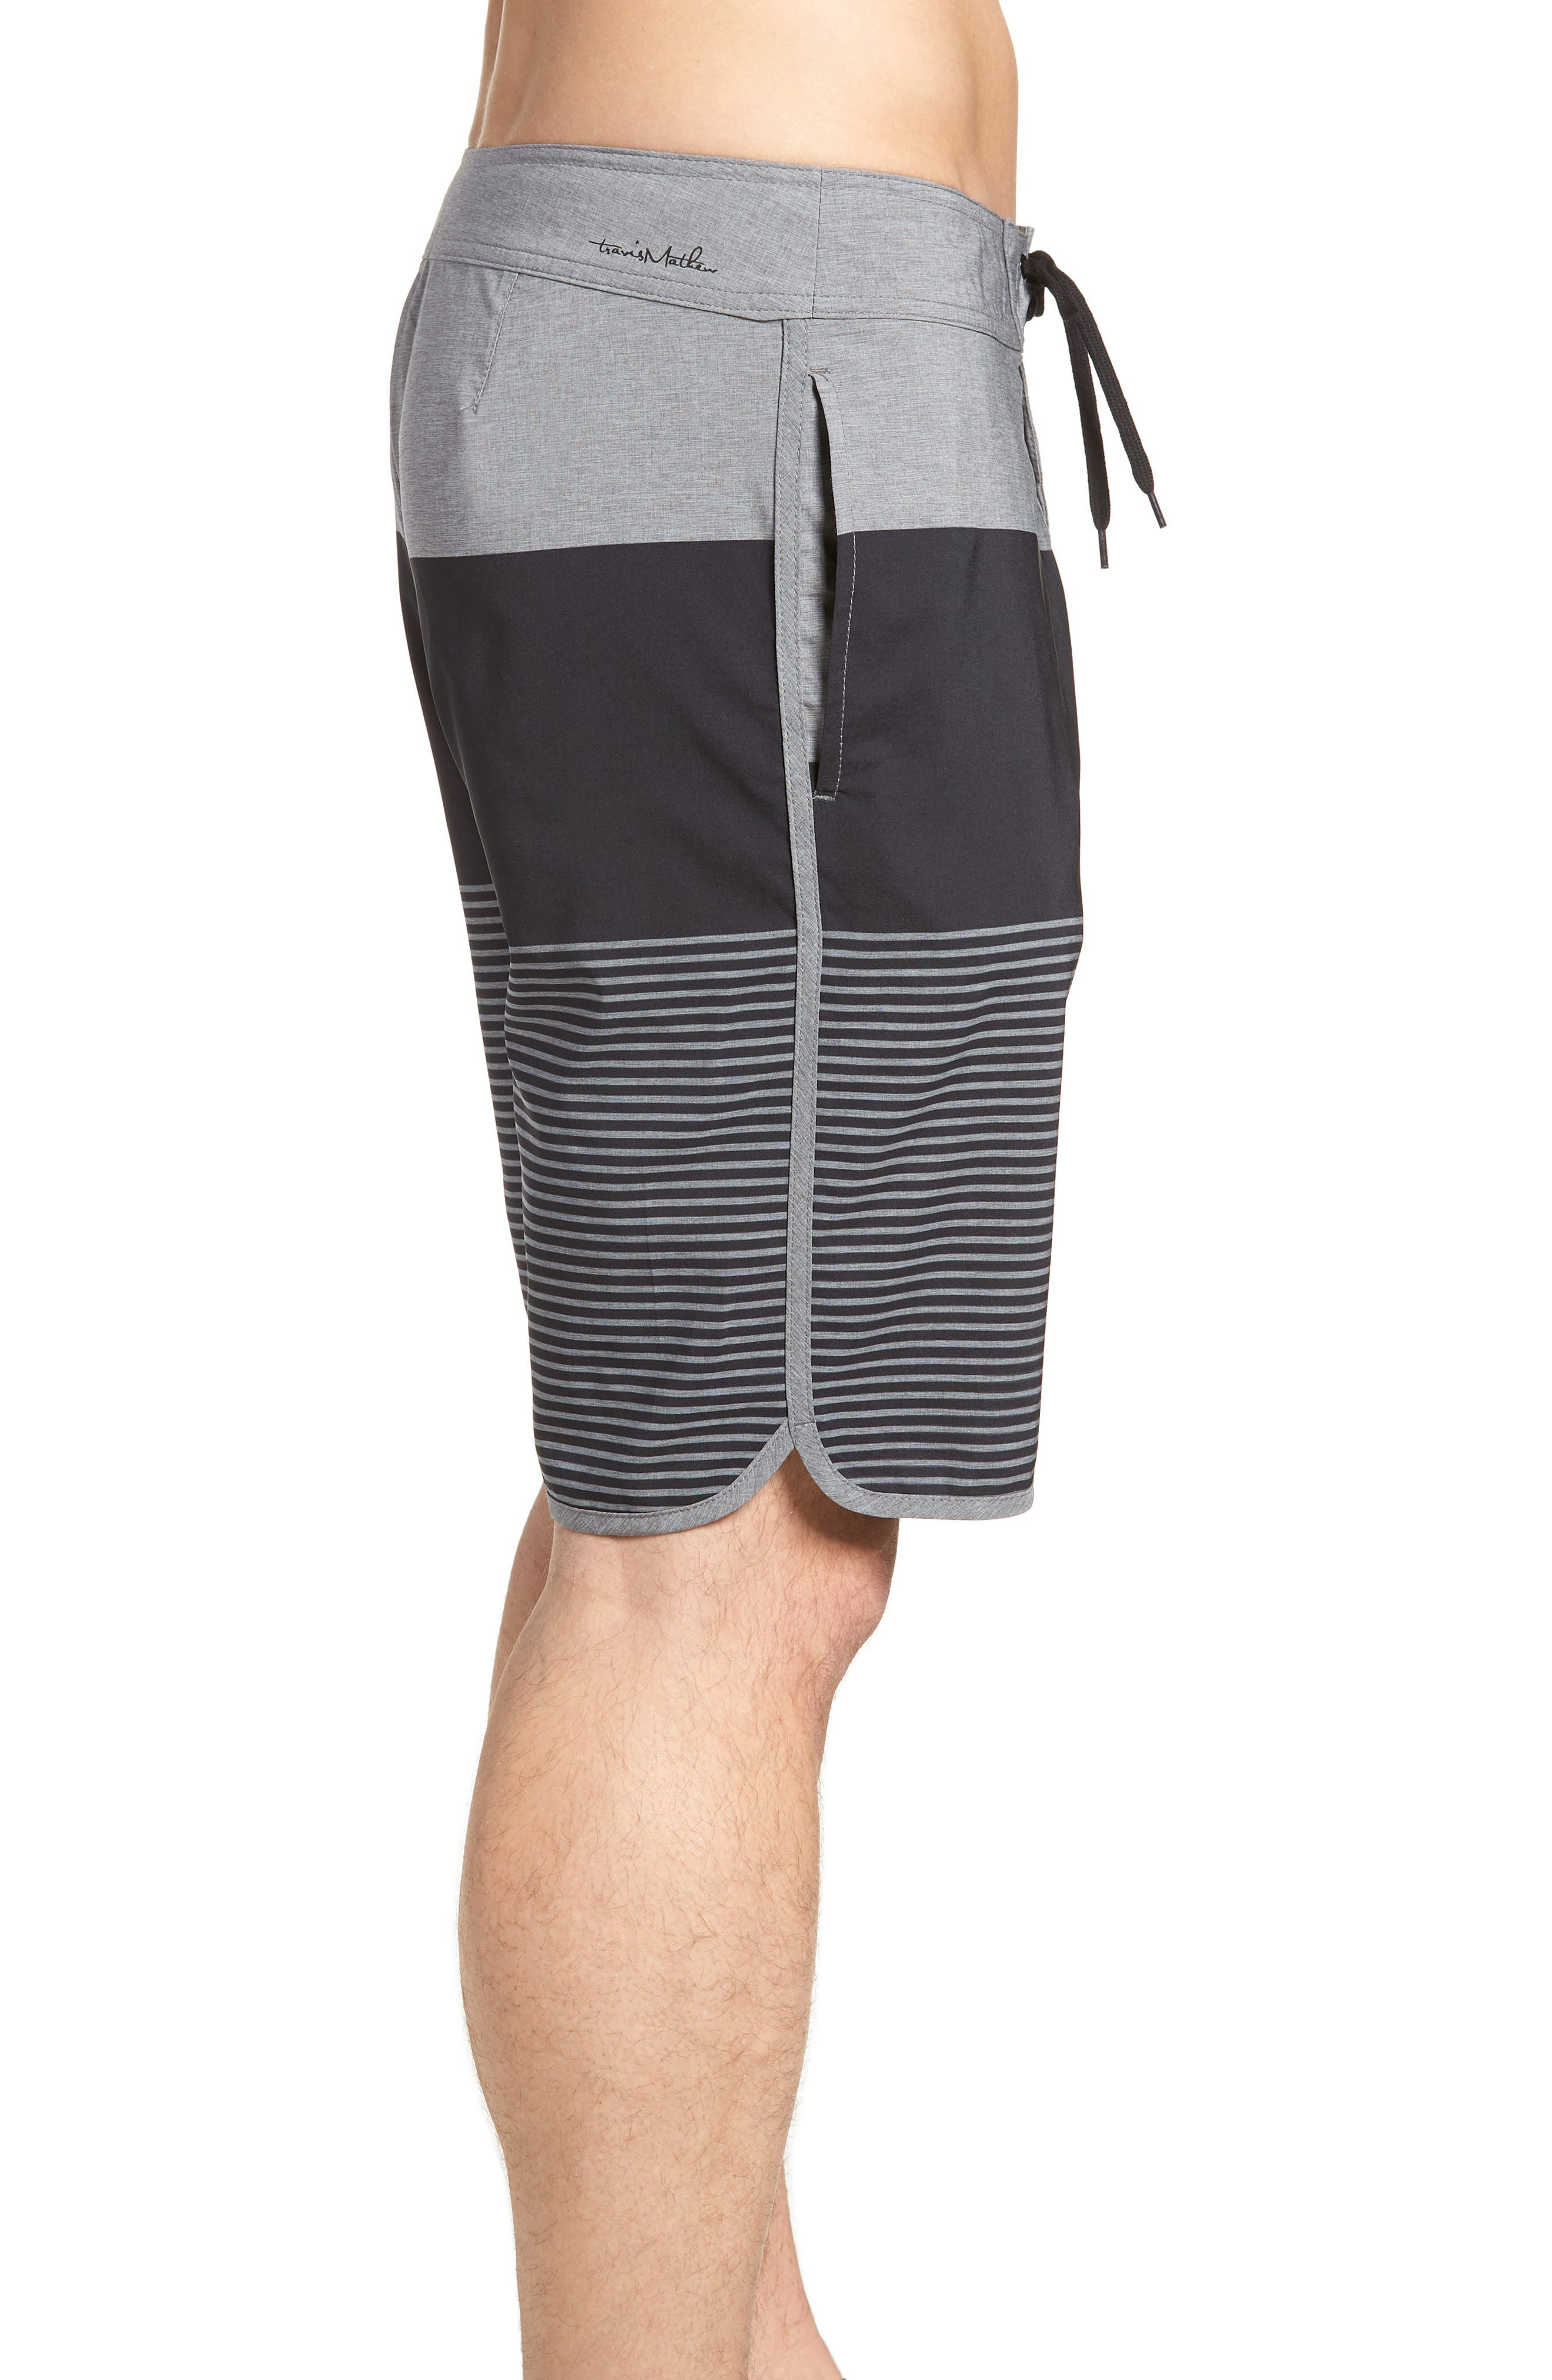 Claim It Regular Fit Board Shorts,                             Alternate thumbnail 3, color,                             Heather Black